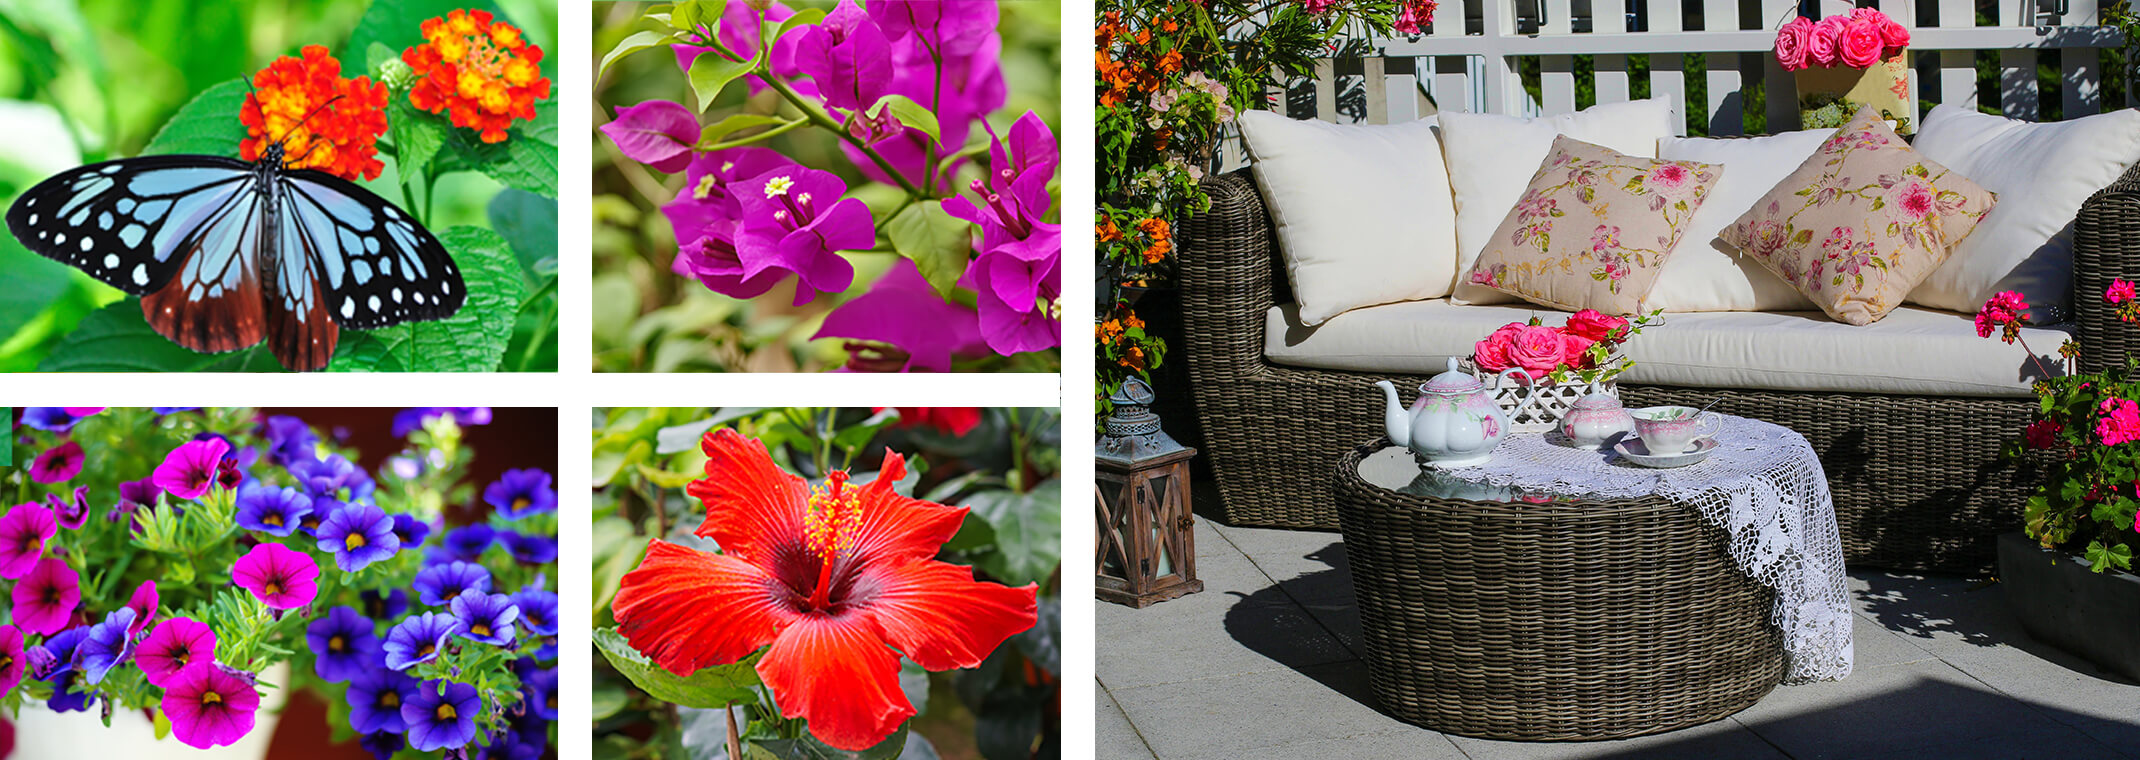 5 images: a butterfly on lantana flowers; petunias, bougainvillea, hibiscus, and a patio with bougainvillea, roses and geraniums next to seating, a tea set and a white fence